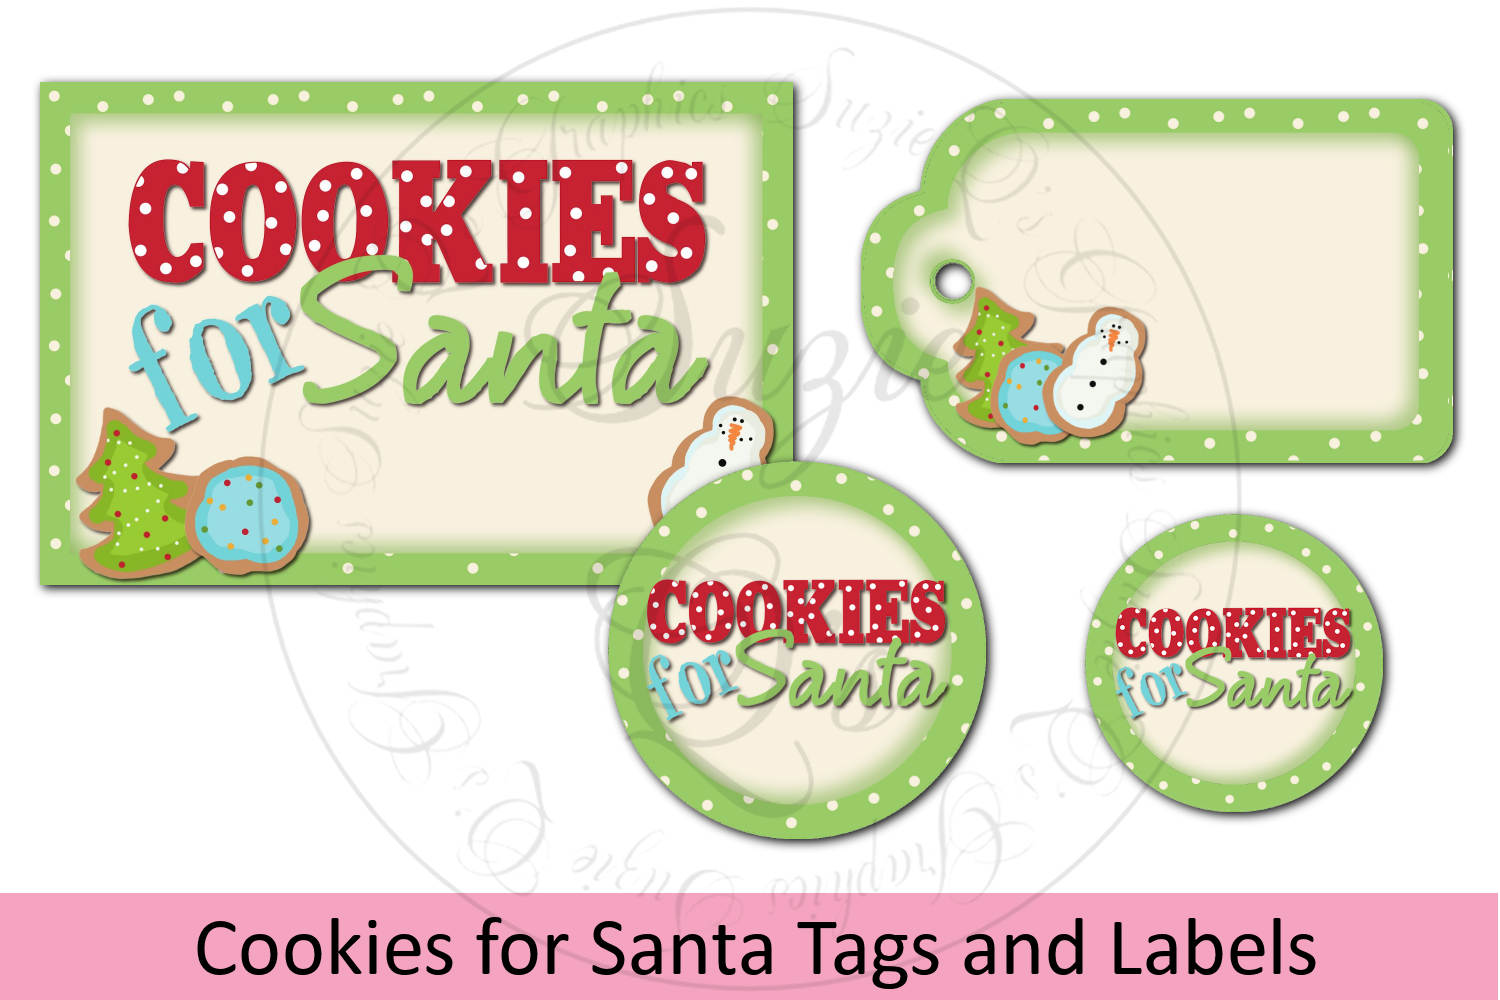 Cookies for Santa Jar Labels and Tag example image 1